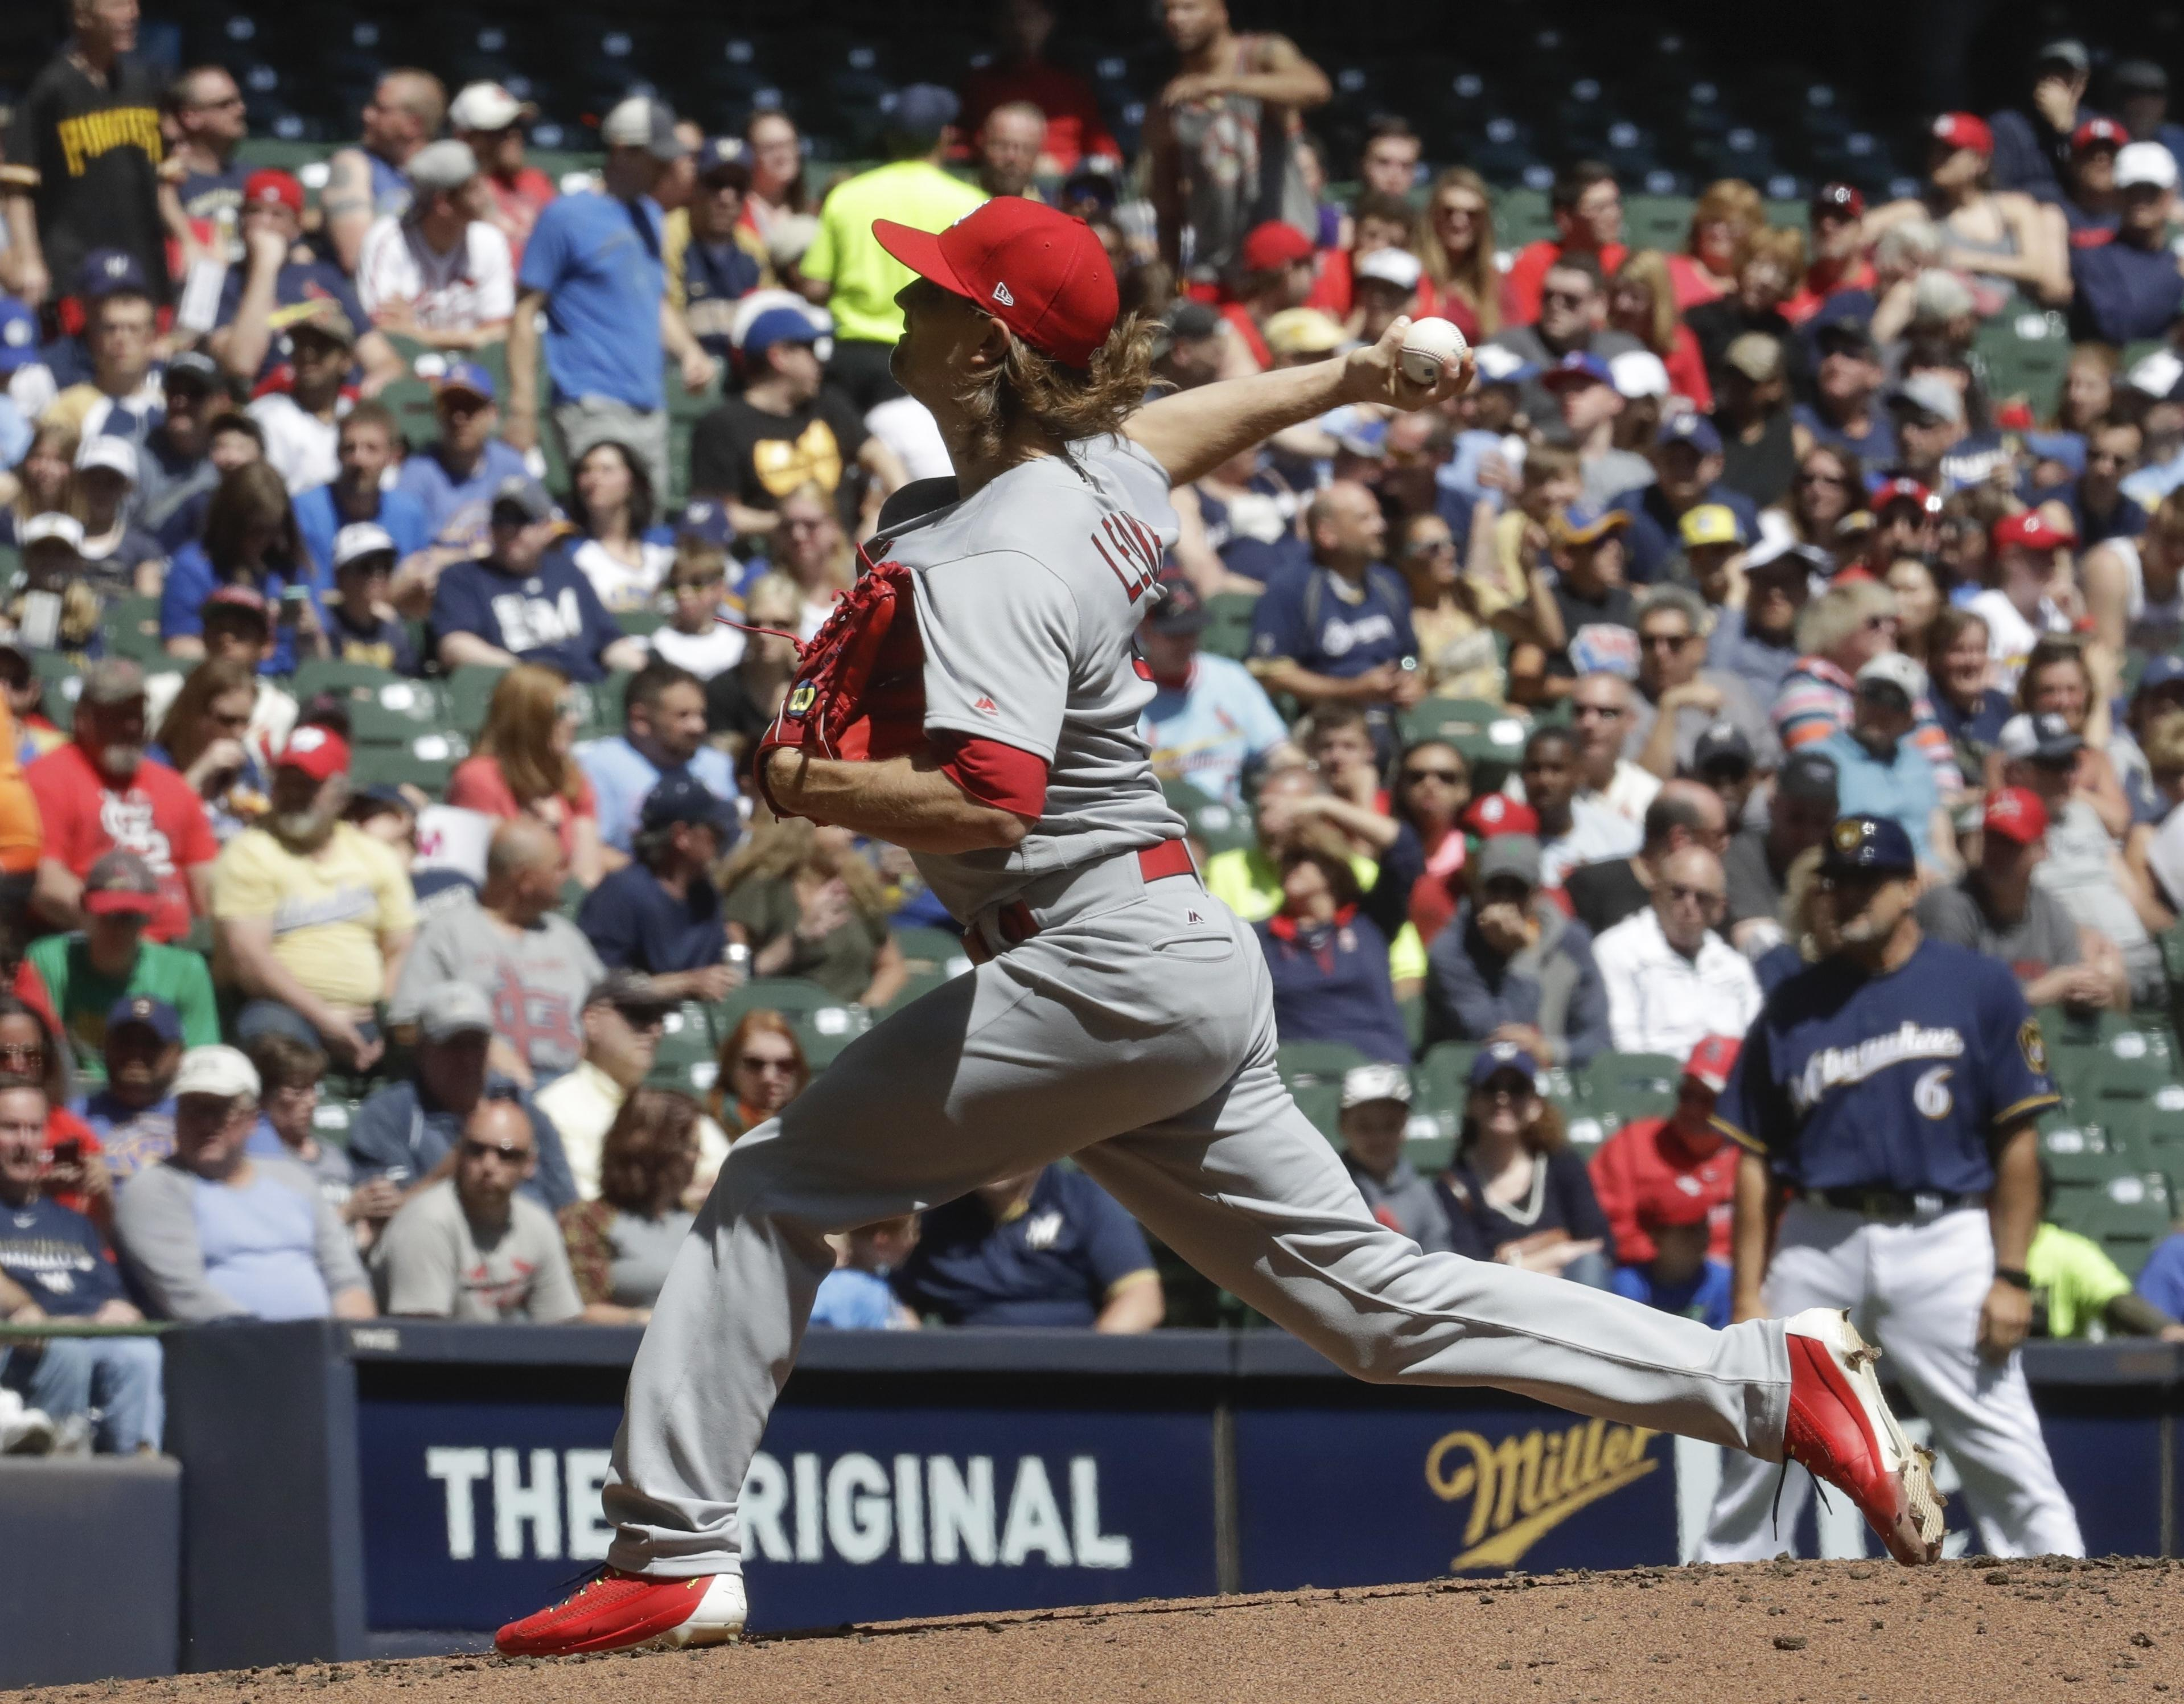 Cardinals_brewers_baseball_05245